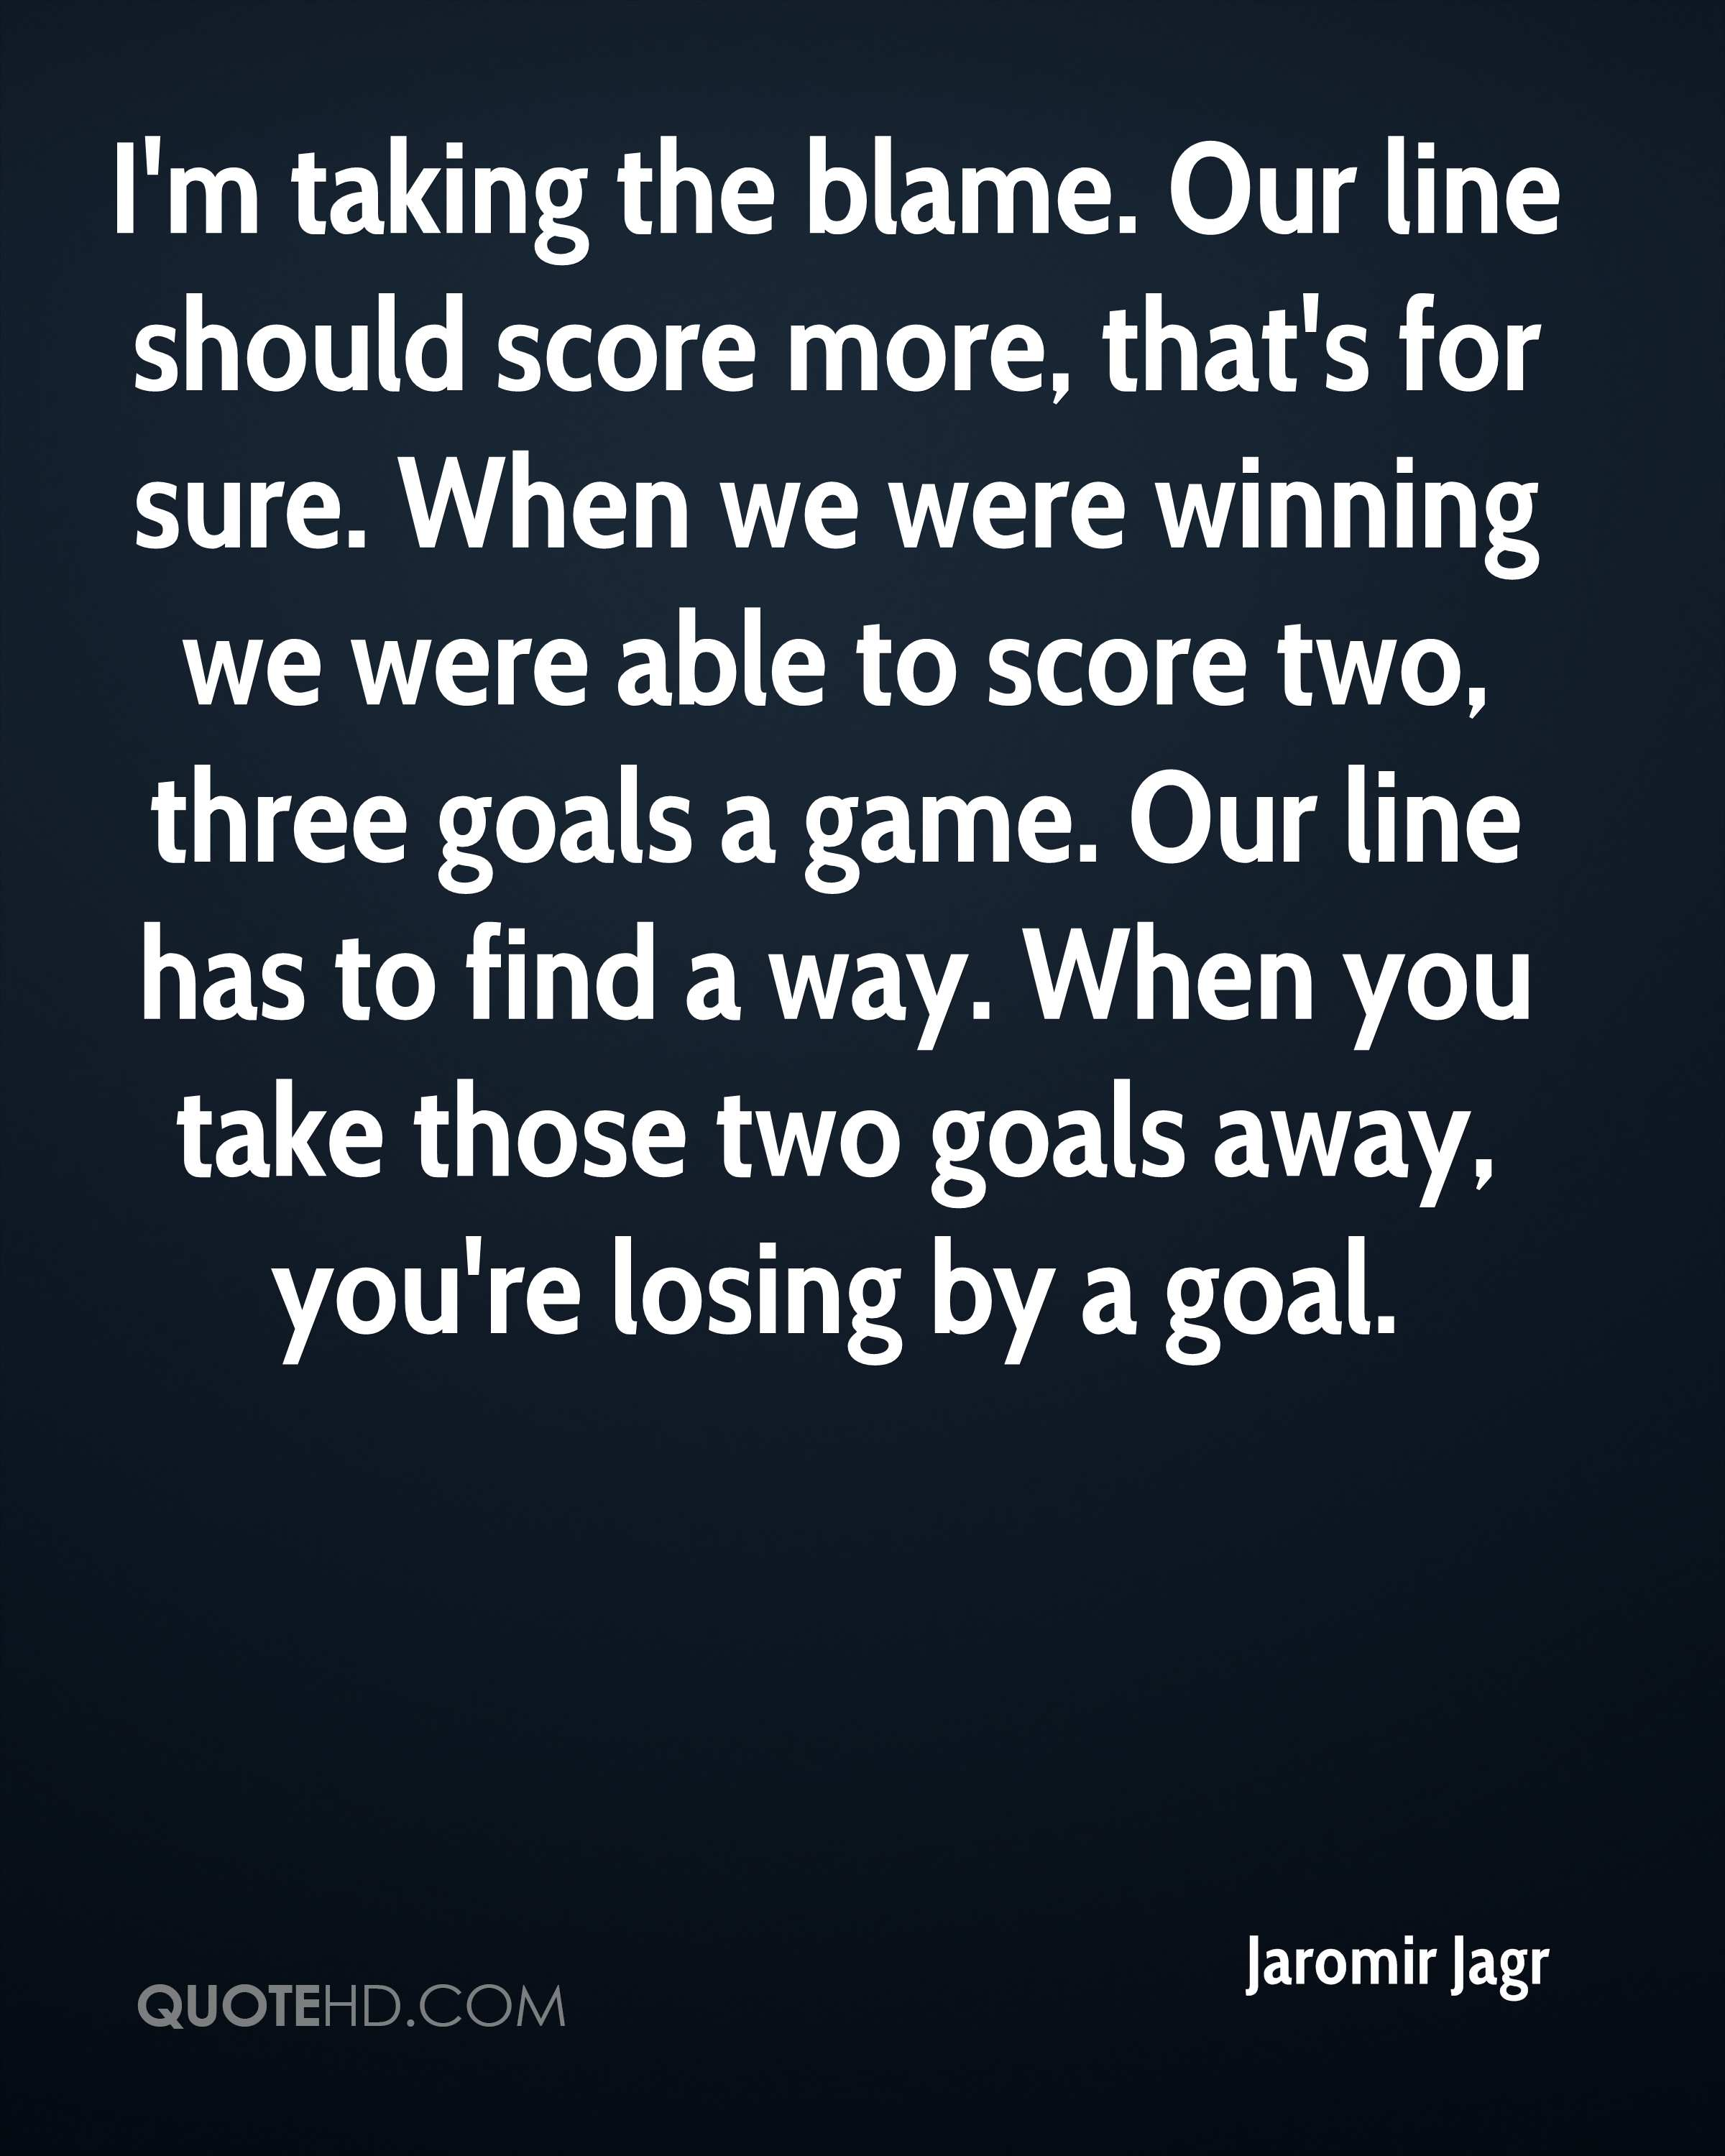 I'm taking the blame. Our line should score more, that's for sure. When we were winning we were able to score two, three goals a game. Our line has to find a way. When you take those two goals away, you're losing by a goal.